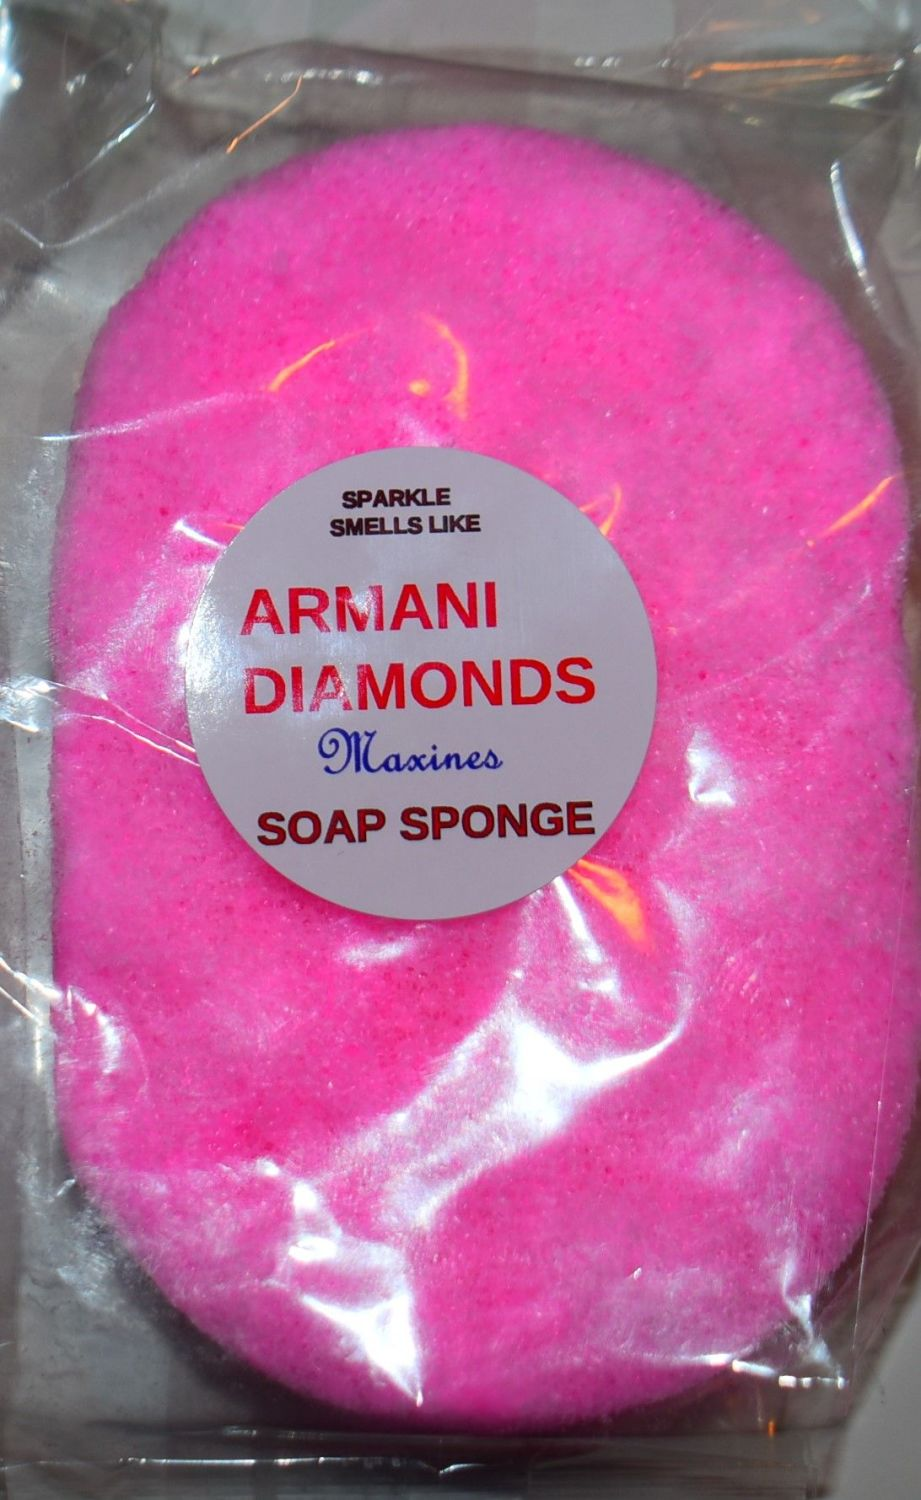 SPARKLE, SIMILAR TO ARMANI DIAMONDS SOAP SPONG